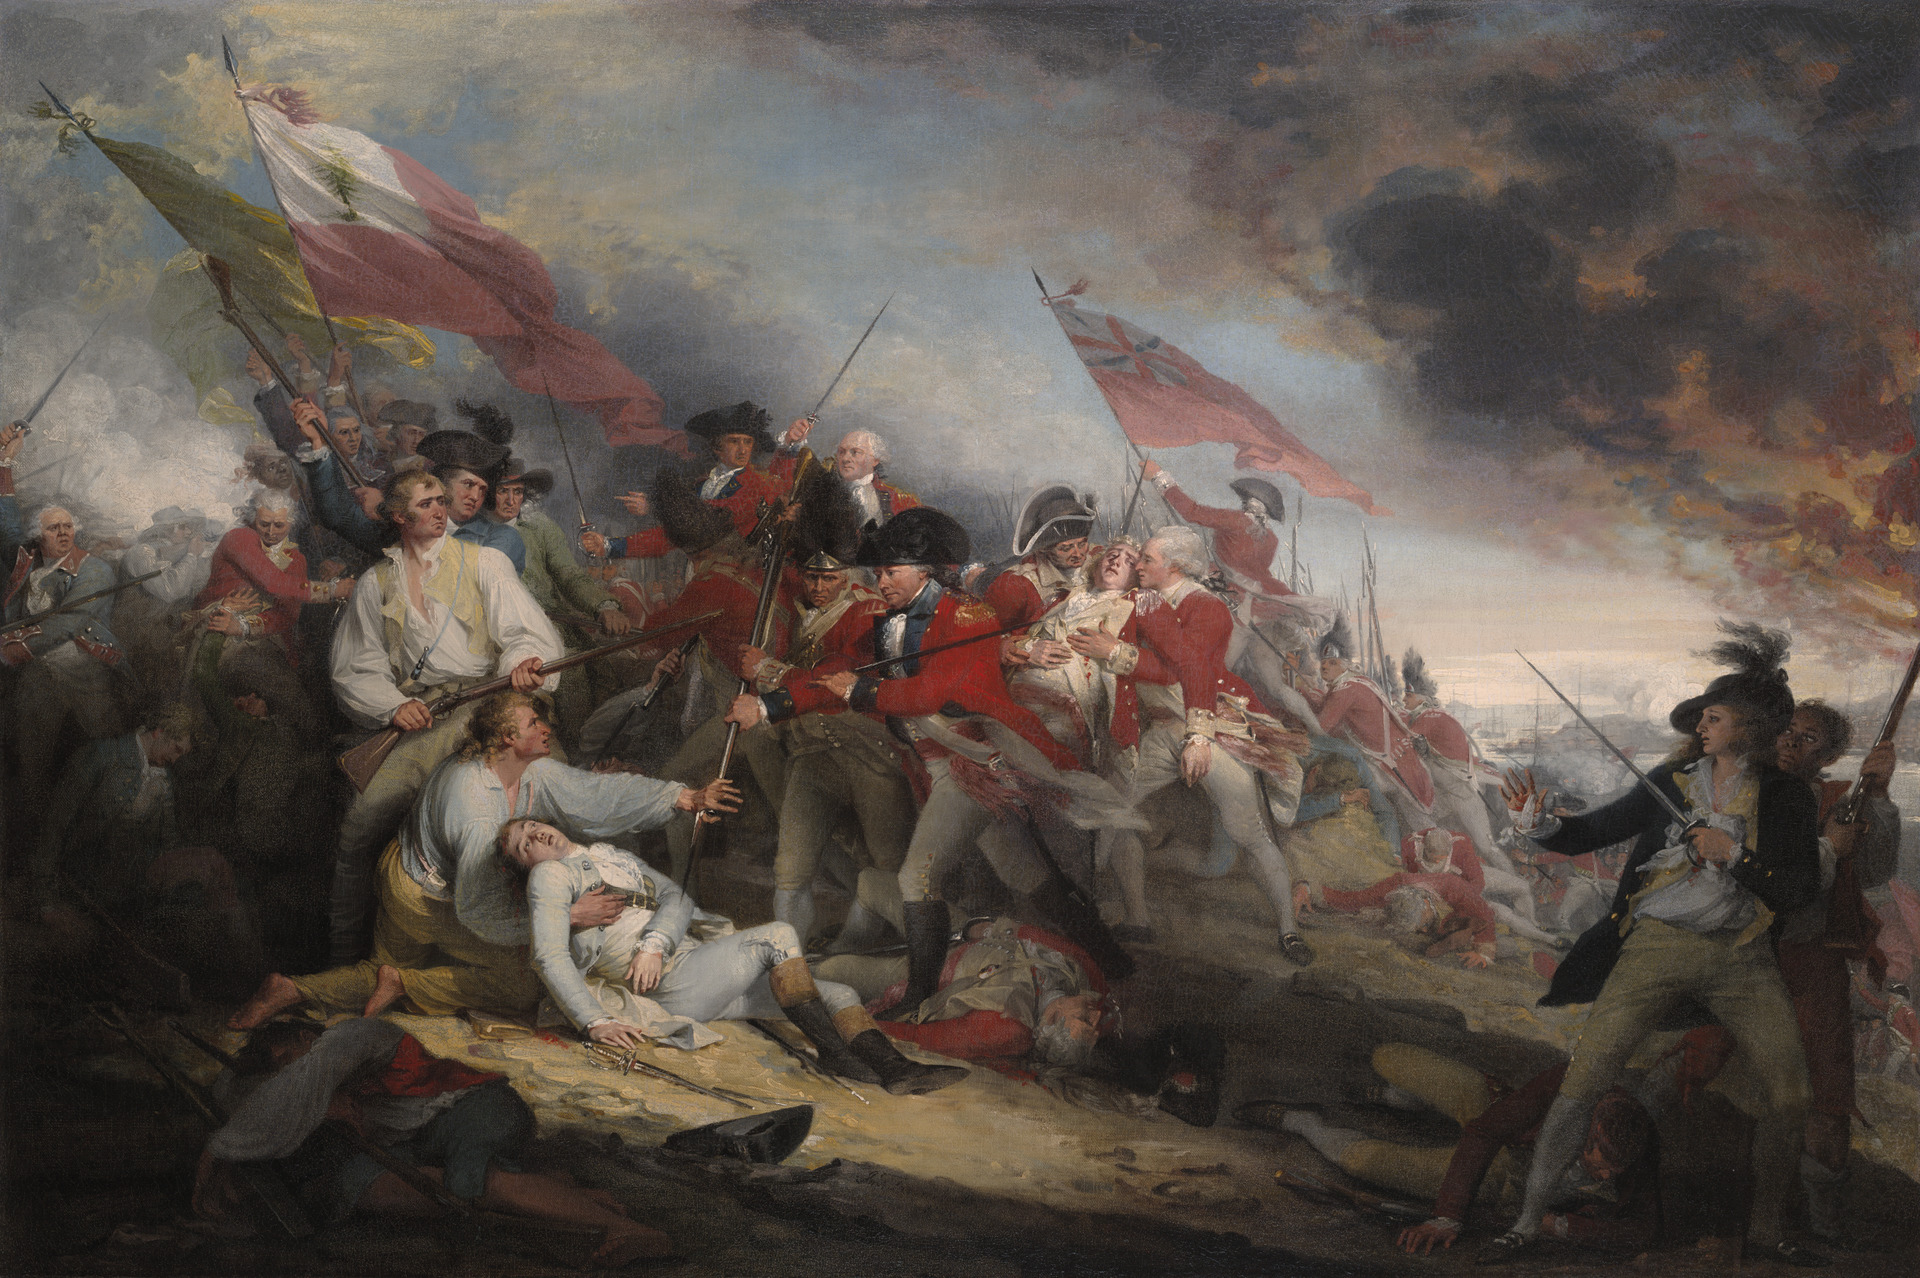 The Death of General Warren at the Battle of Bunker's Hill, June 17,1775, by John Trumbull, oil on canvas (25 5/8 x 37 5/8 in. or 65.1 x 95.6 cm) framed: 32 1/4 x 44 1/2 x 3 in. or 81.92 x 113.03 x 7.62 cm), 1786. Currently at the Gallery of Fine Arts, Yale University, New Haven, Connecticut.